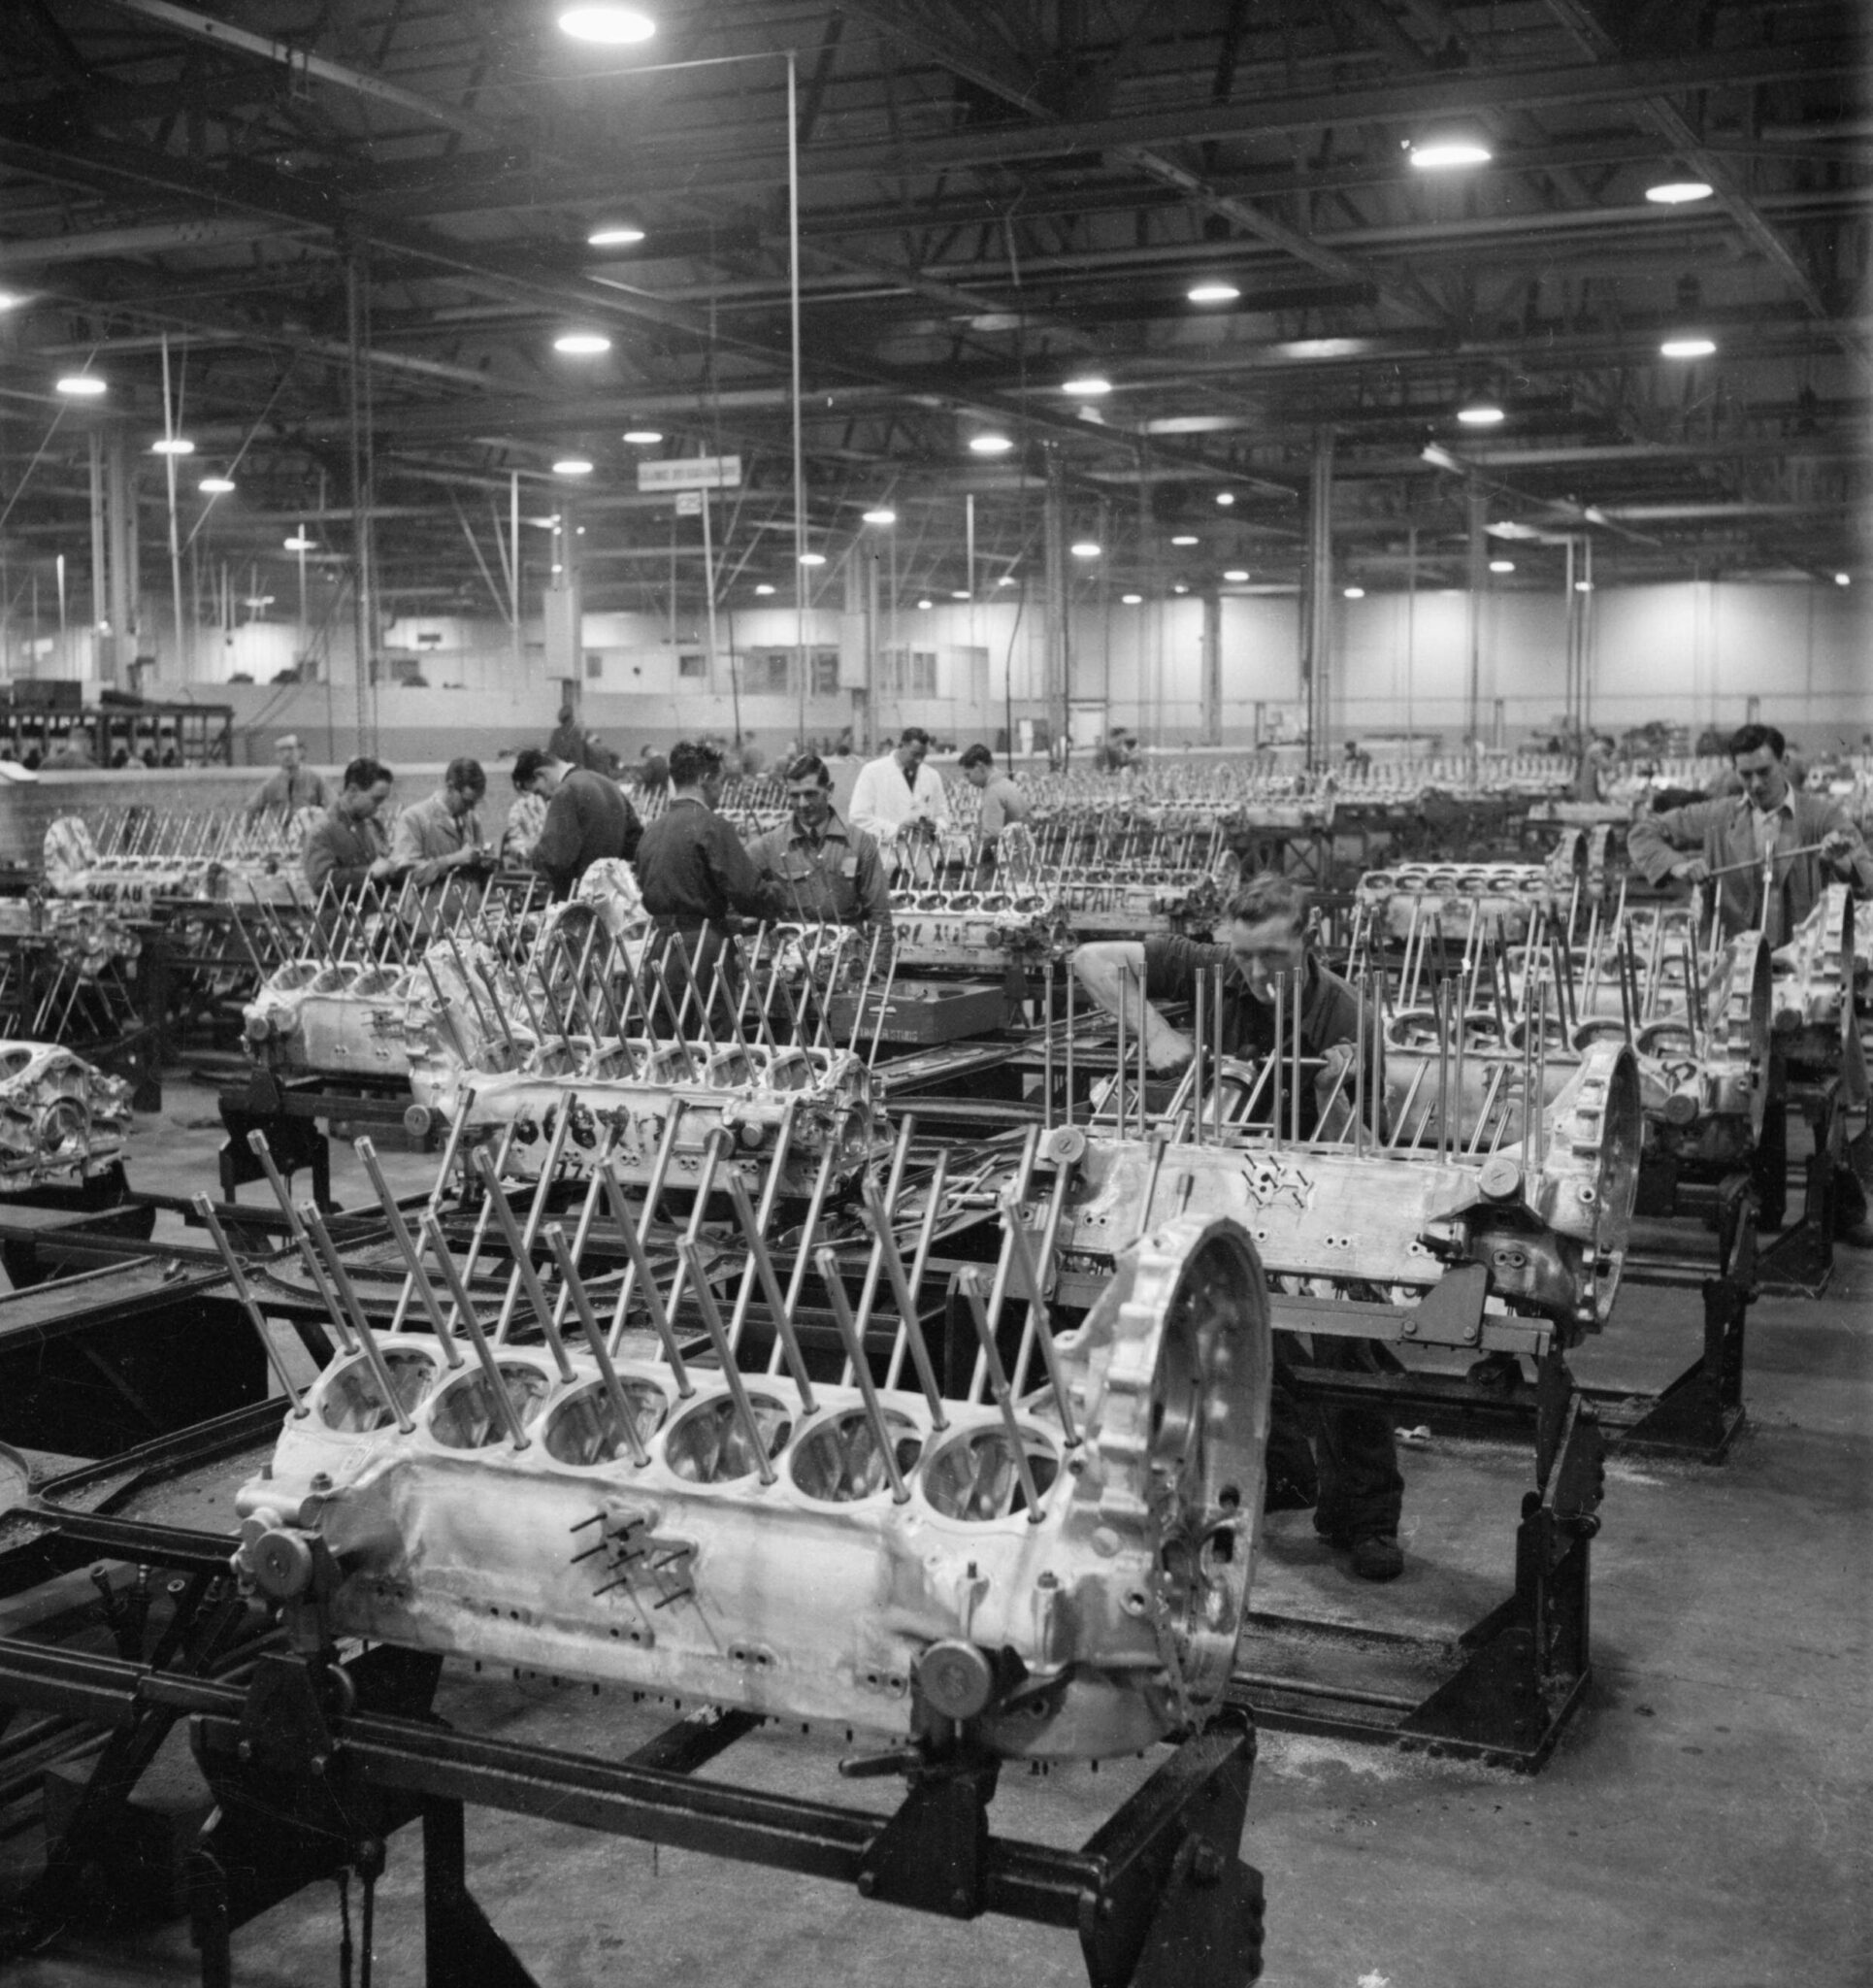 Documentary: The Design, Development, And Construction Of The Rolls-Royce Merlin Engine